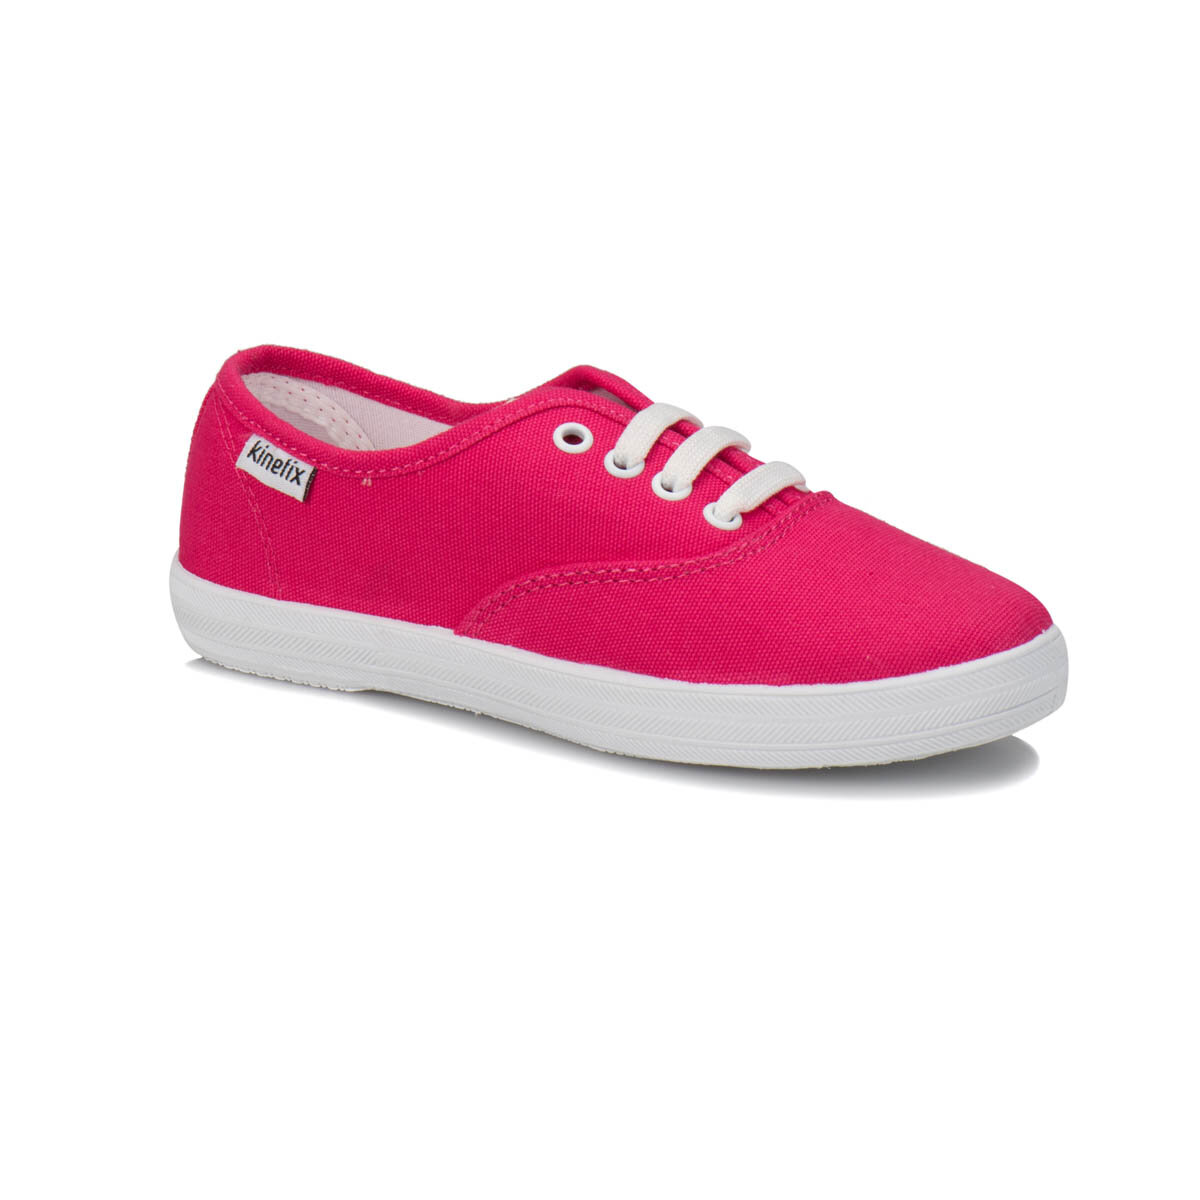 FLO HELEN Fuchsia Female Child Sneaker Shoes KINETIX